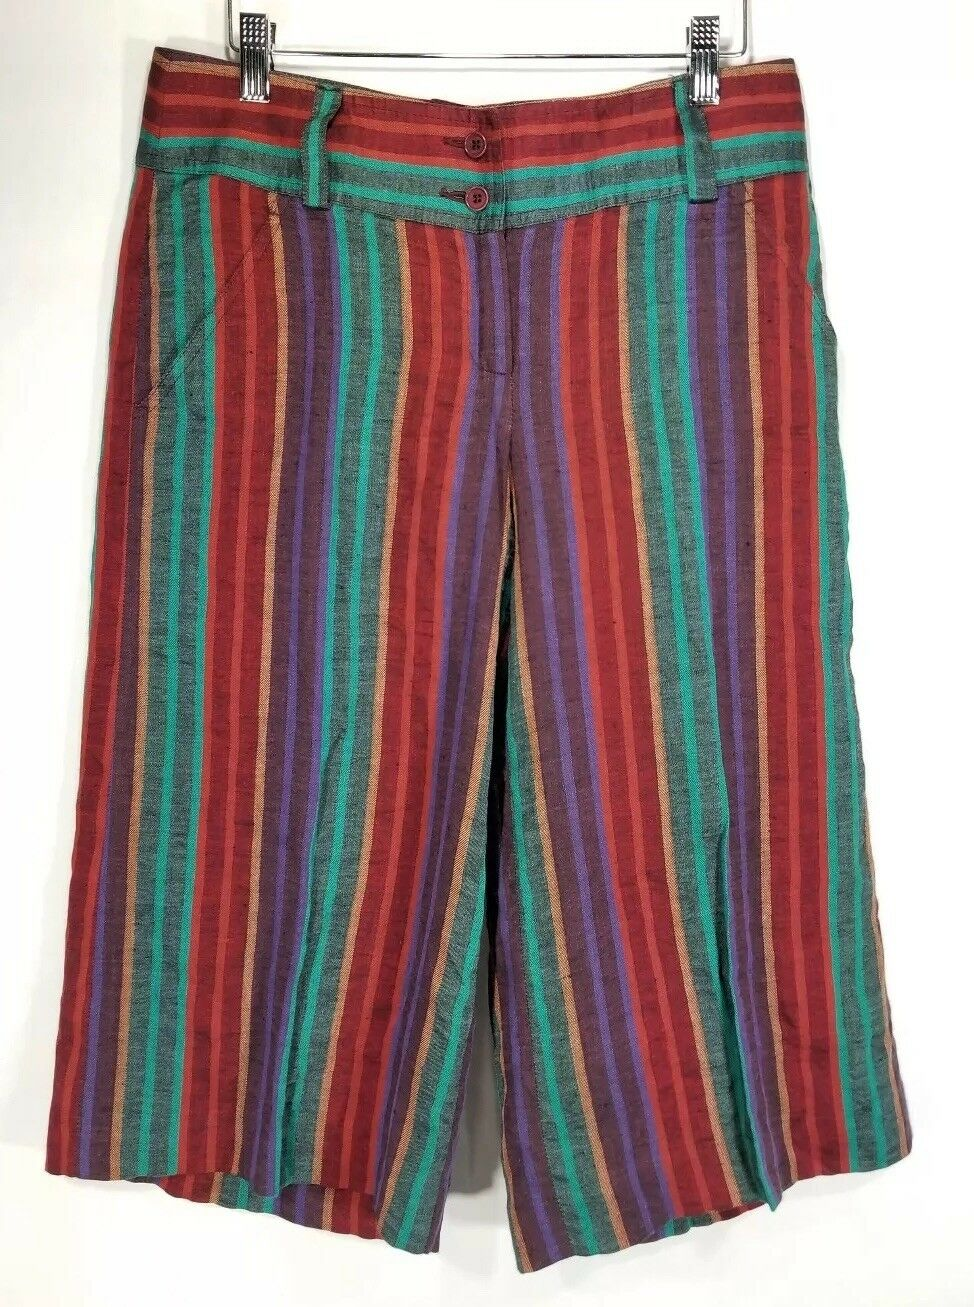 Etro 100% Linen Wide Leg Pants 42 8 Green Red Purple Stripe Capri NWT MSRP